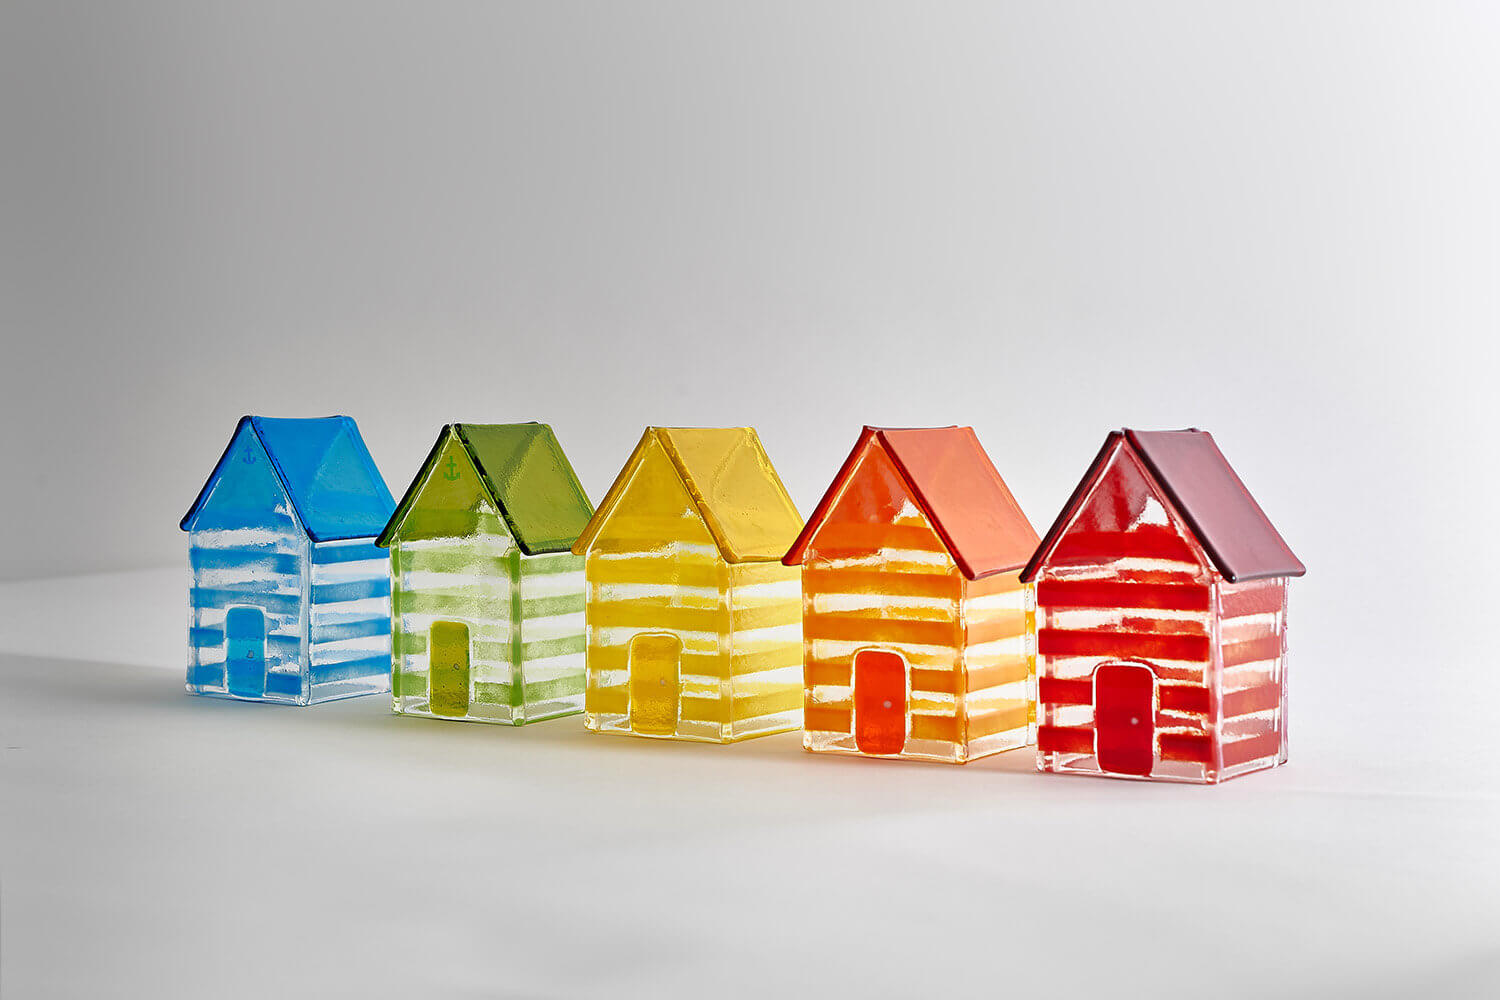 Glass art chalets photographed with gradient light